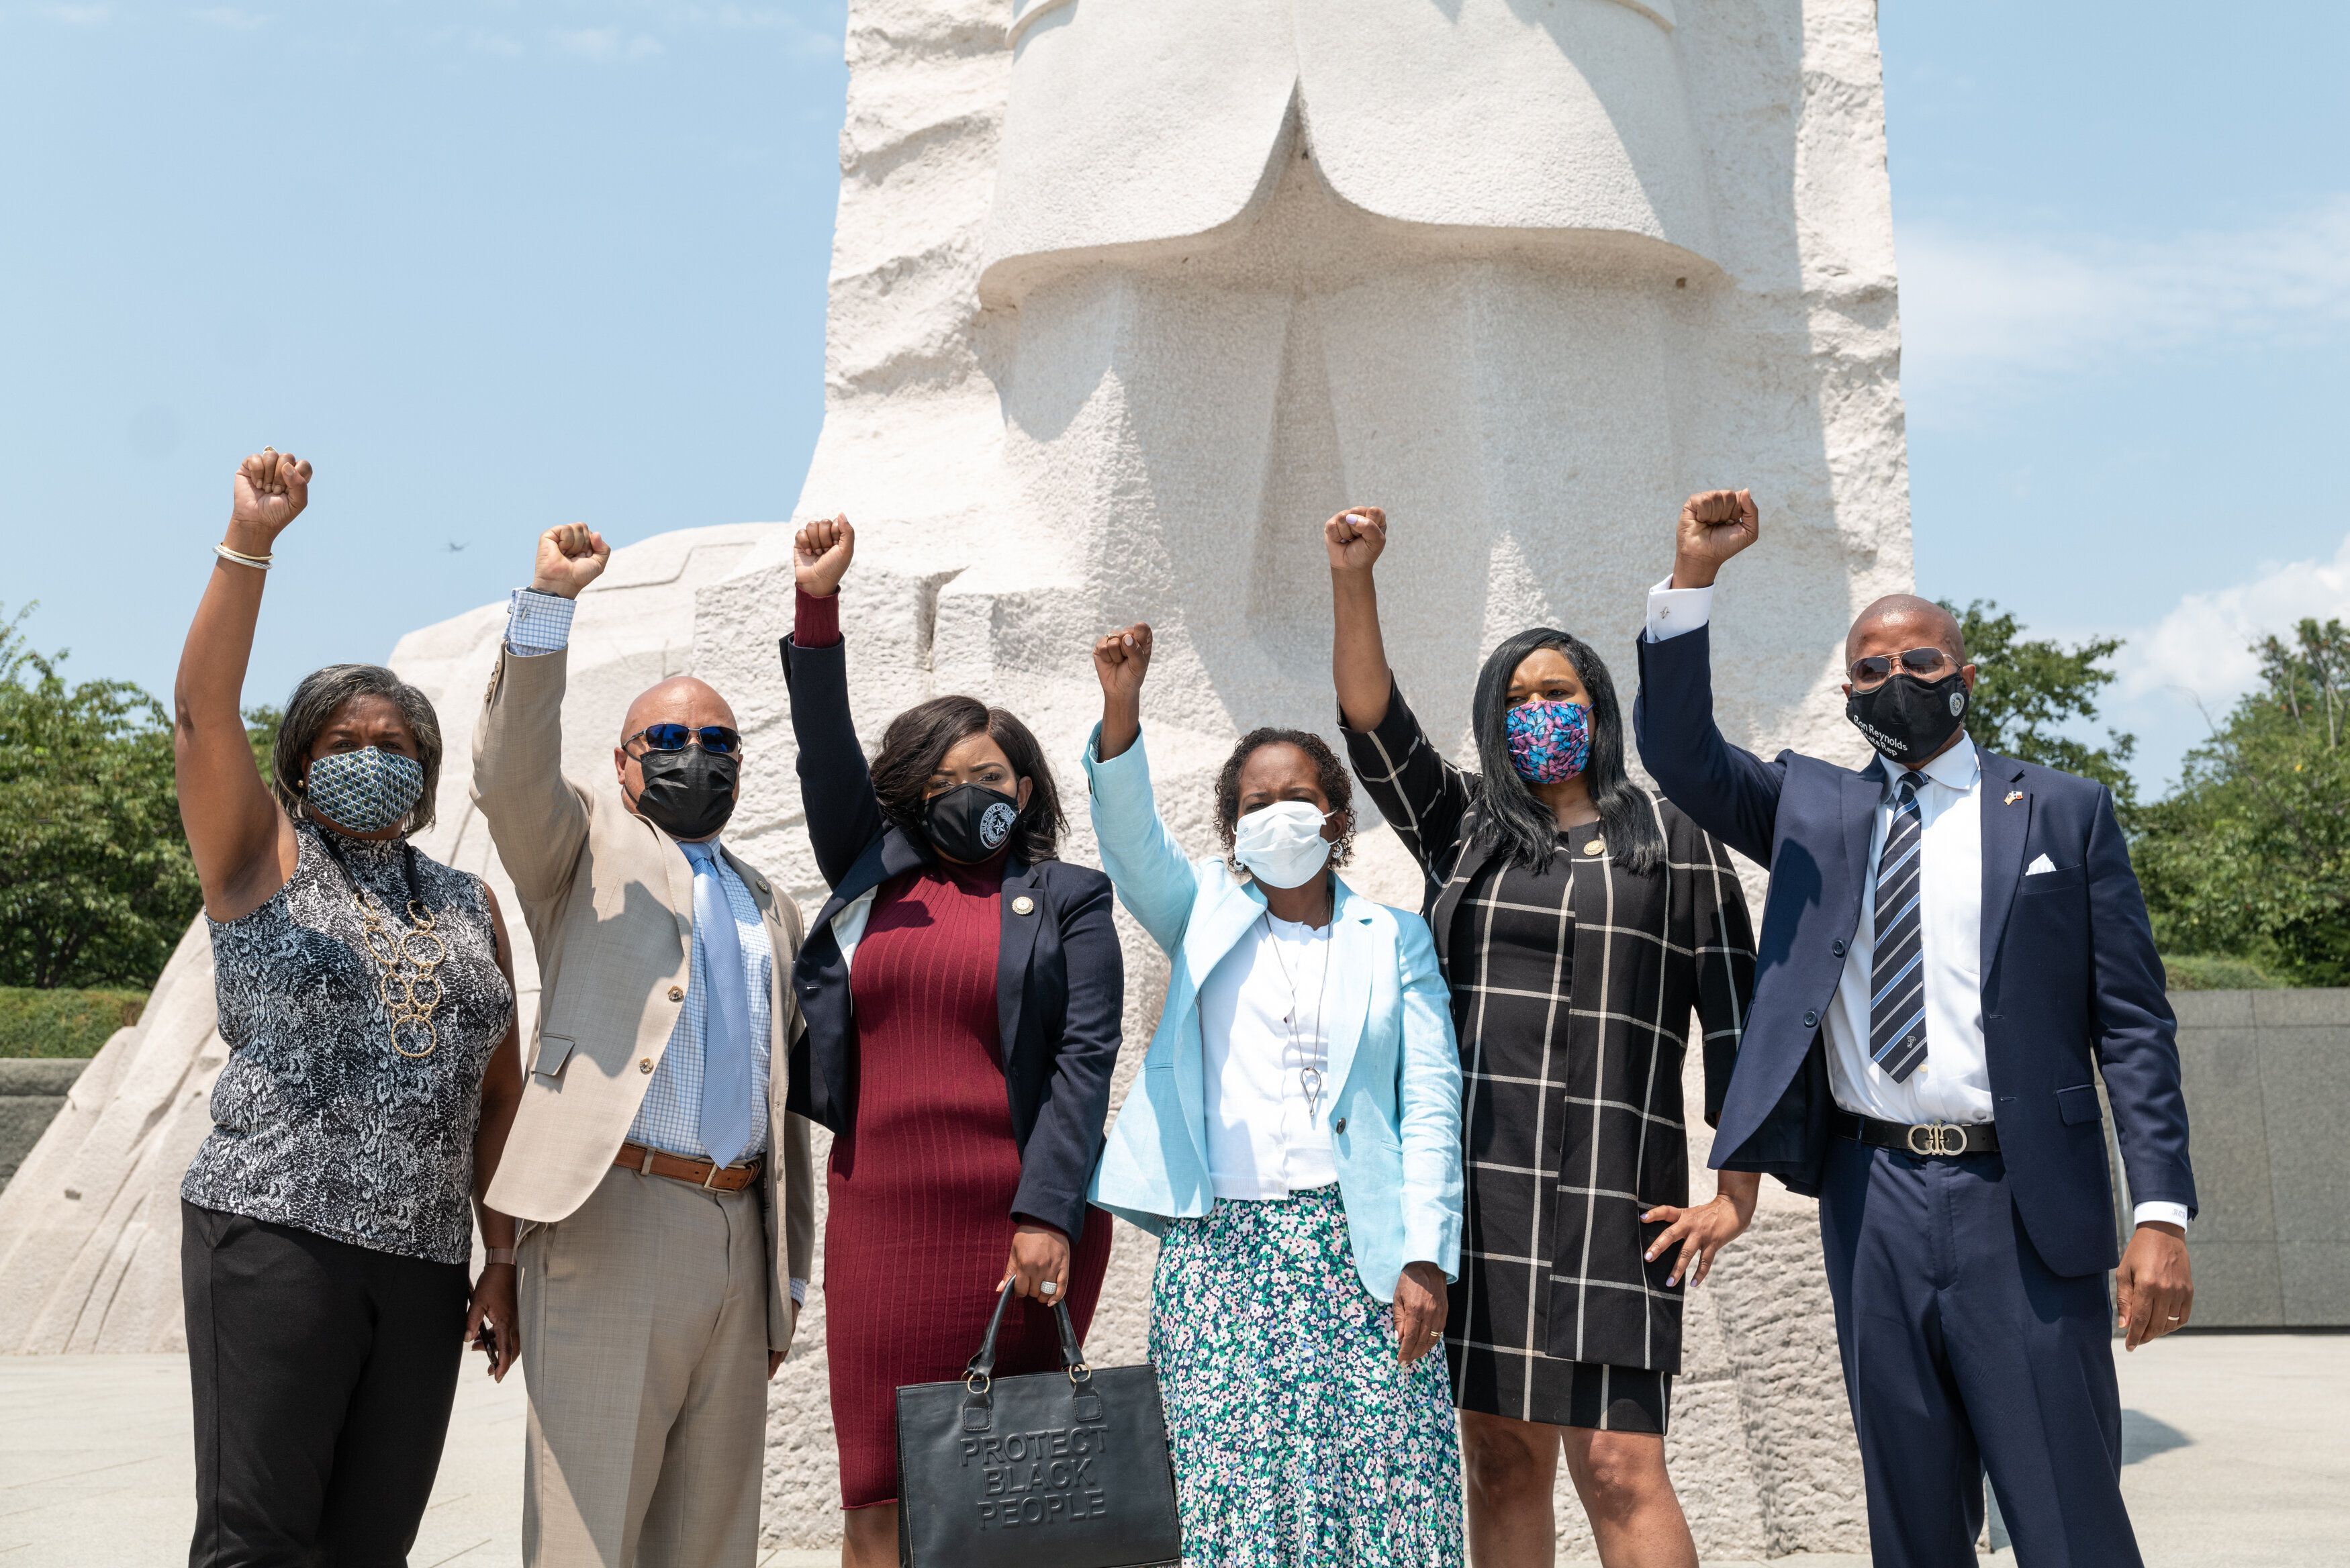 Six of the Texas Democrats who left their state to block a new voting restrictions bill gathered at the Martin Luther King Jr